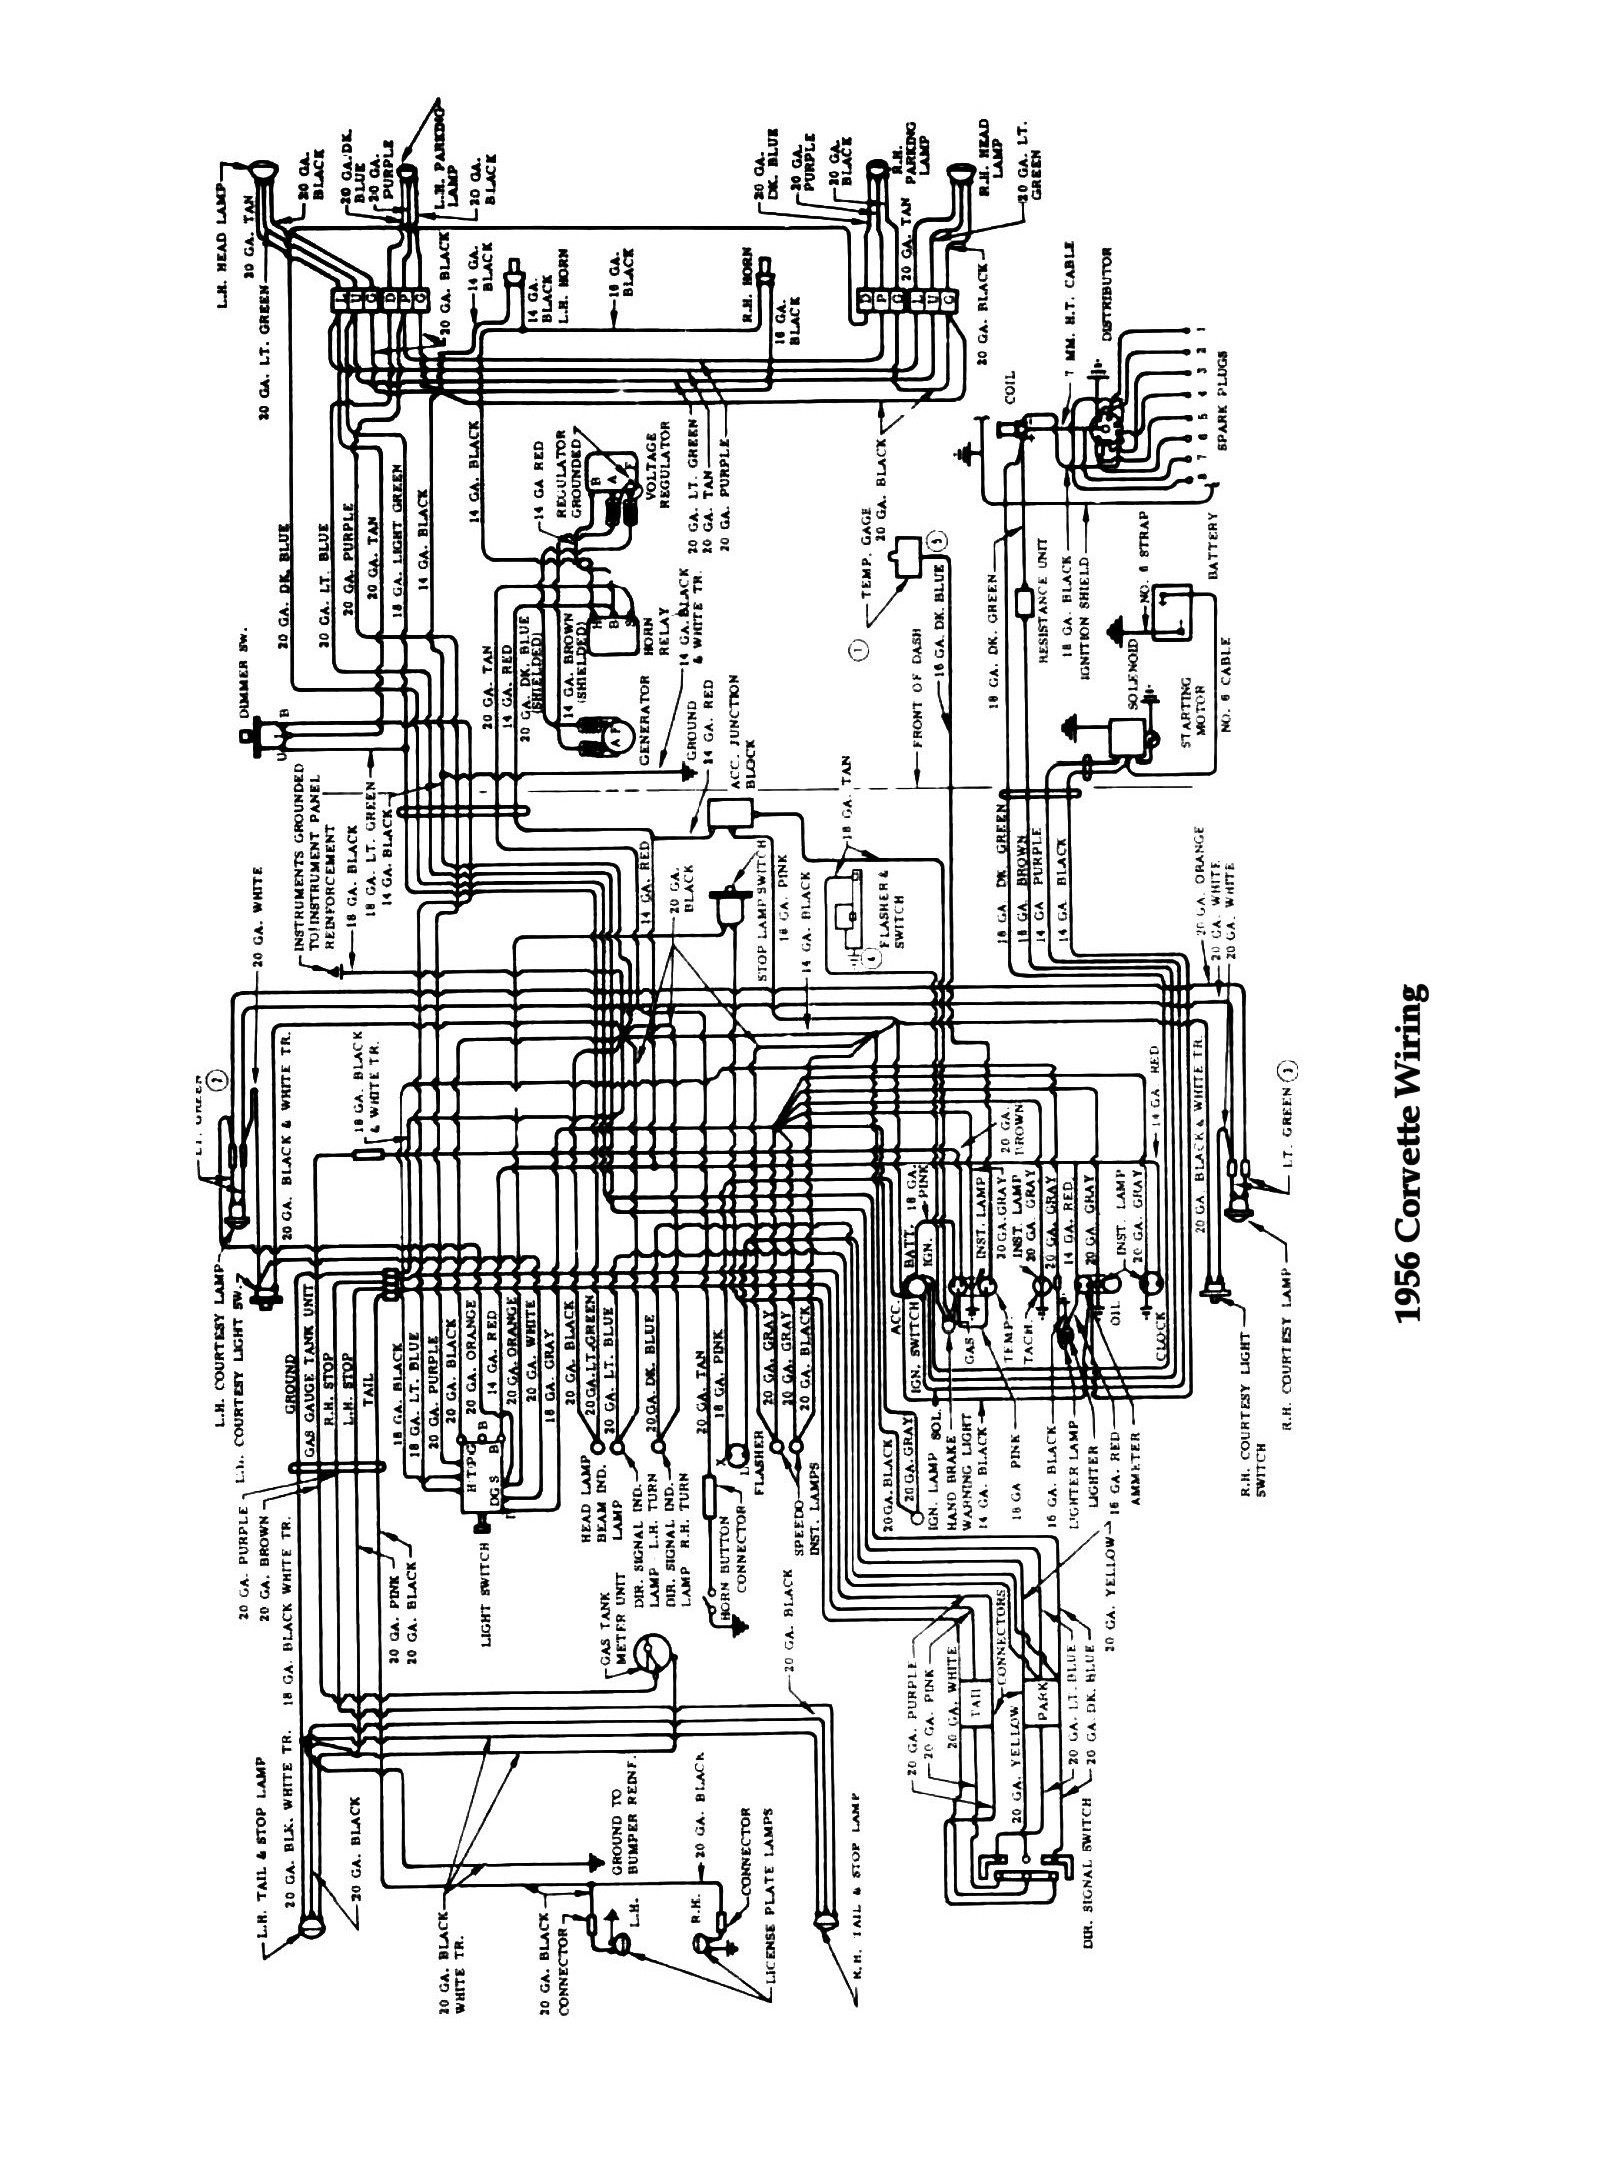 Chevrolet Truck Heater Wiring Diagram System - Block And Schematic ...